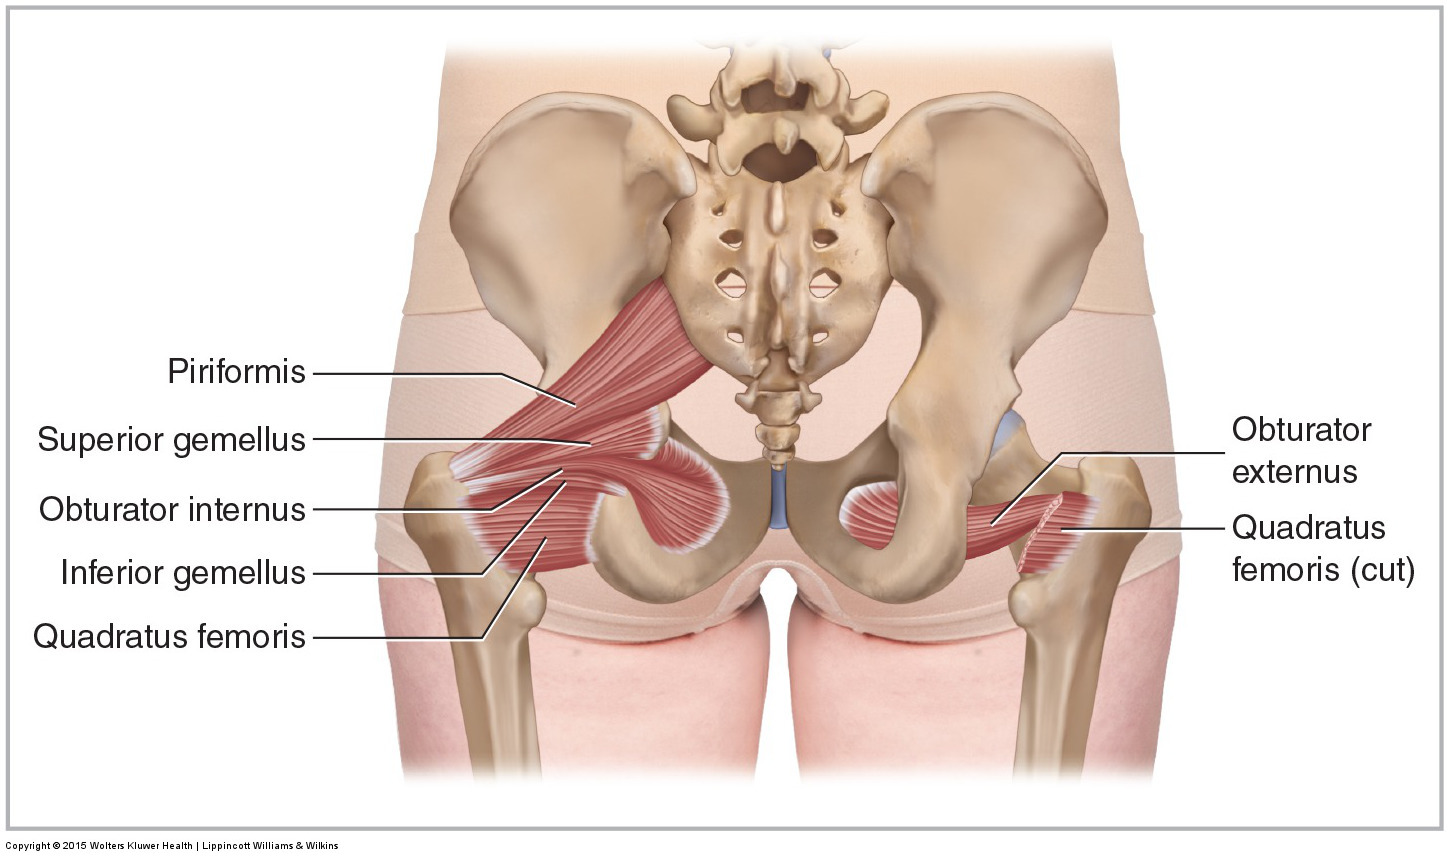 Posterior views of the deep lateral rotator group (including the piriformis)